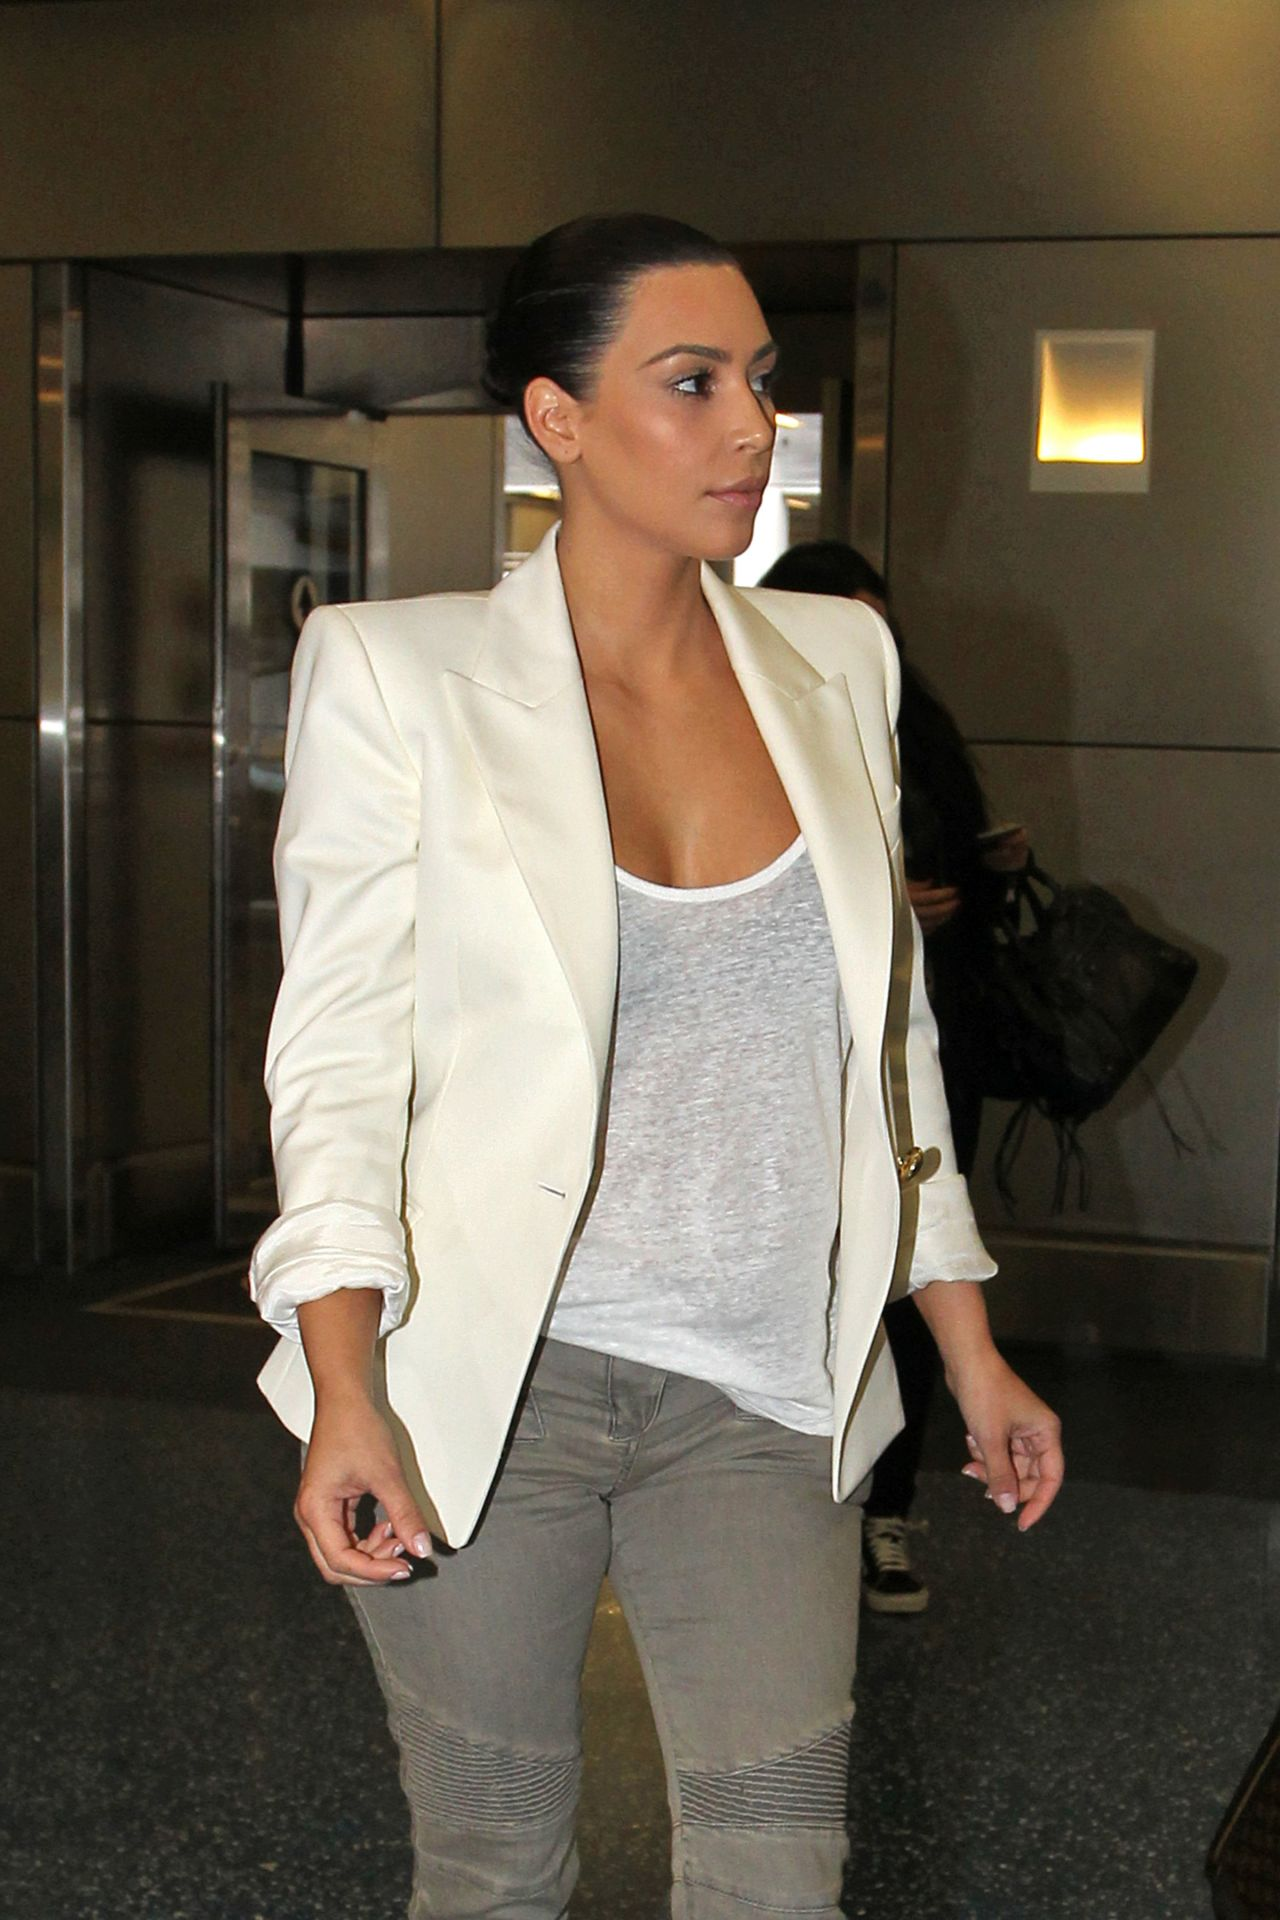 Kim Kardashian Casual Style - Leaving a Photo Studio in Miami - April 2014